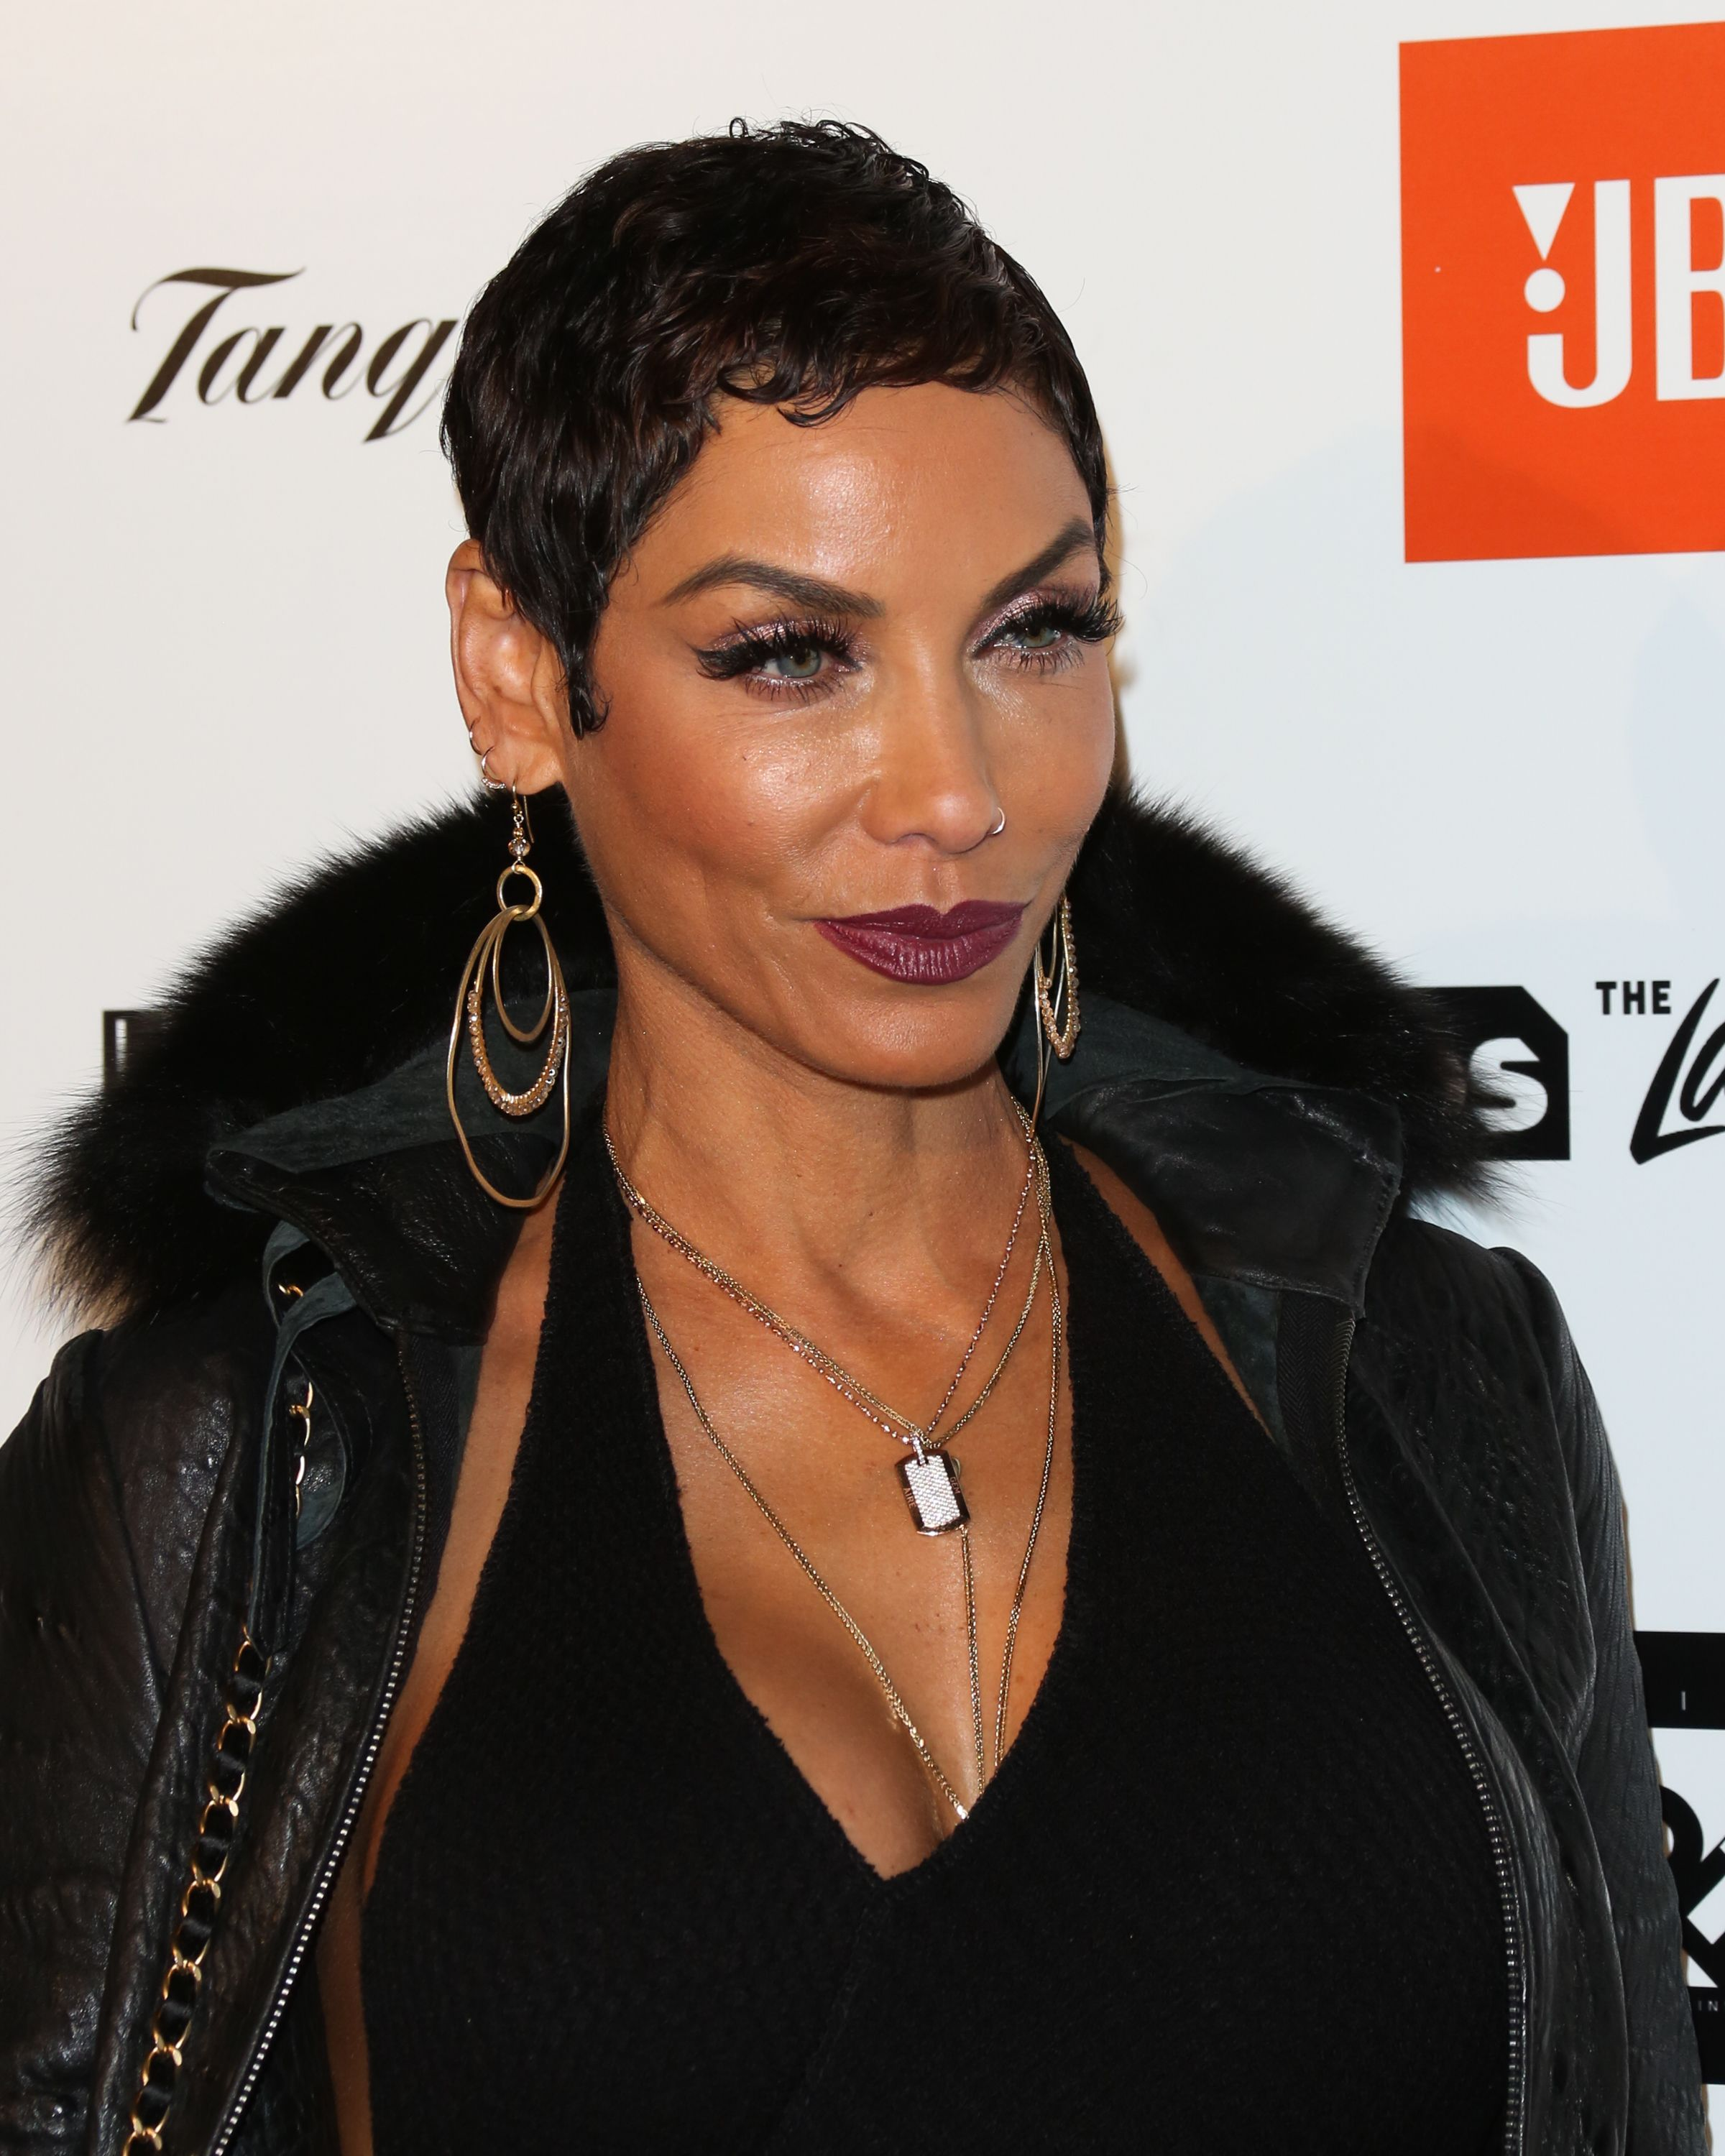 Nicole Murphy at Kenny 'The Jet' Smith's annual All-Star bash in California on February 16, 2018 | Photo: Getty Images